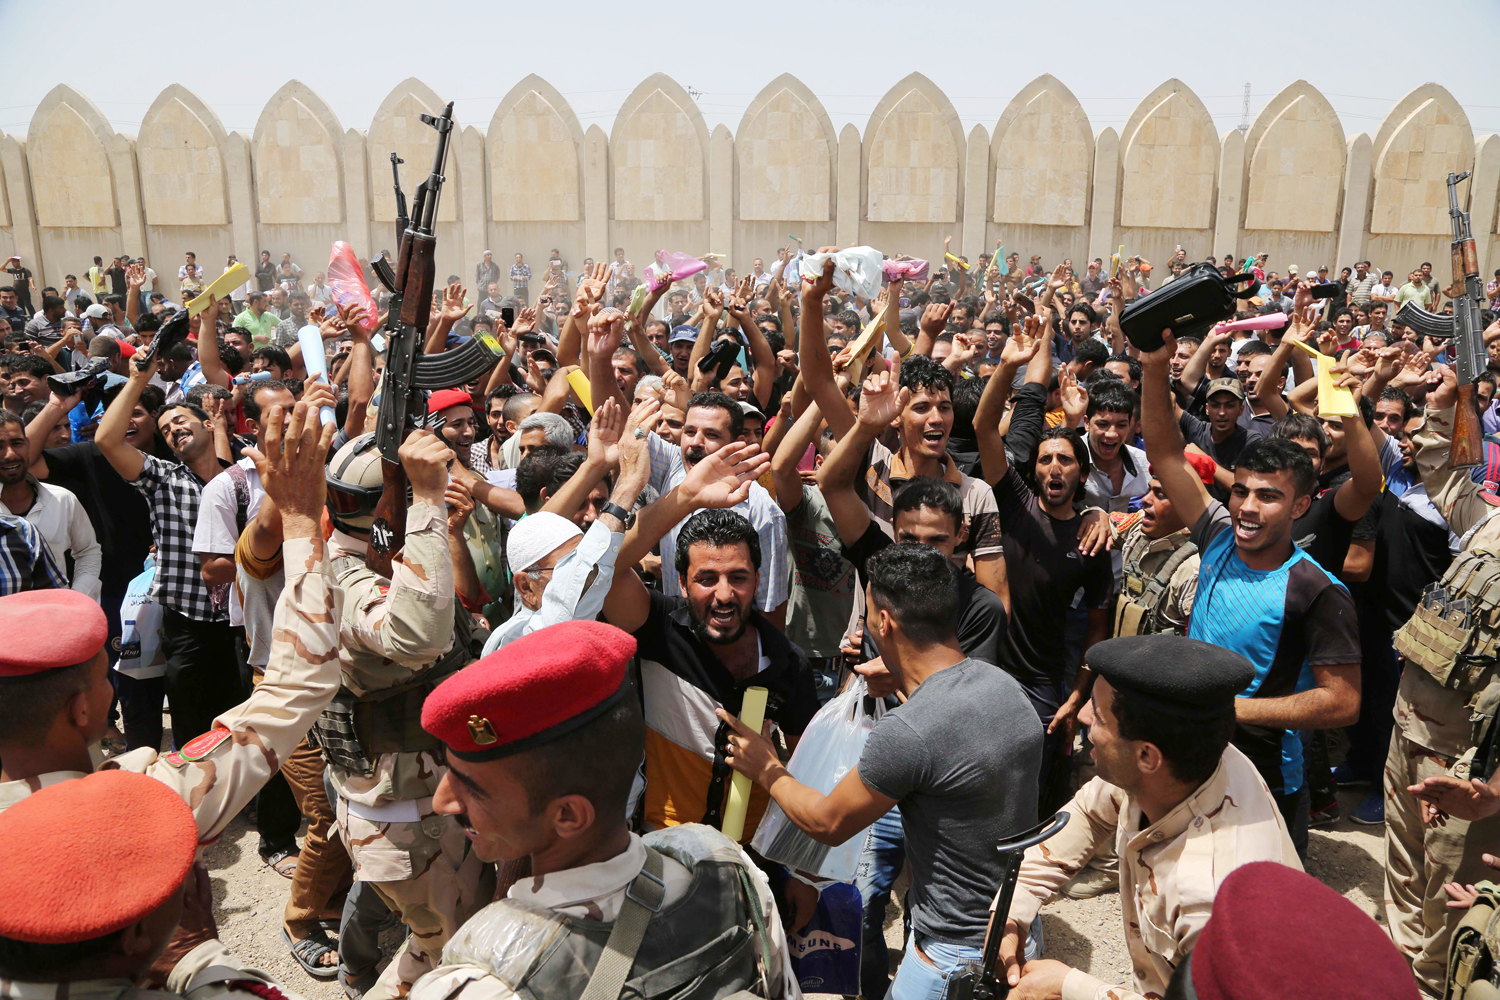 Men chant slogans against the al-Qaida breakaway group Islamic State of Iraq and Syria (ISIS), outside of the main army recruiting center to volunteer for military service in Baghdad on June 12.